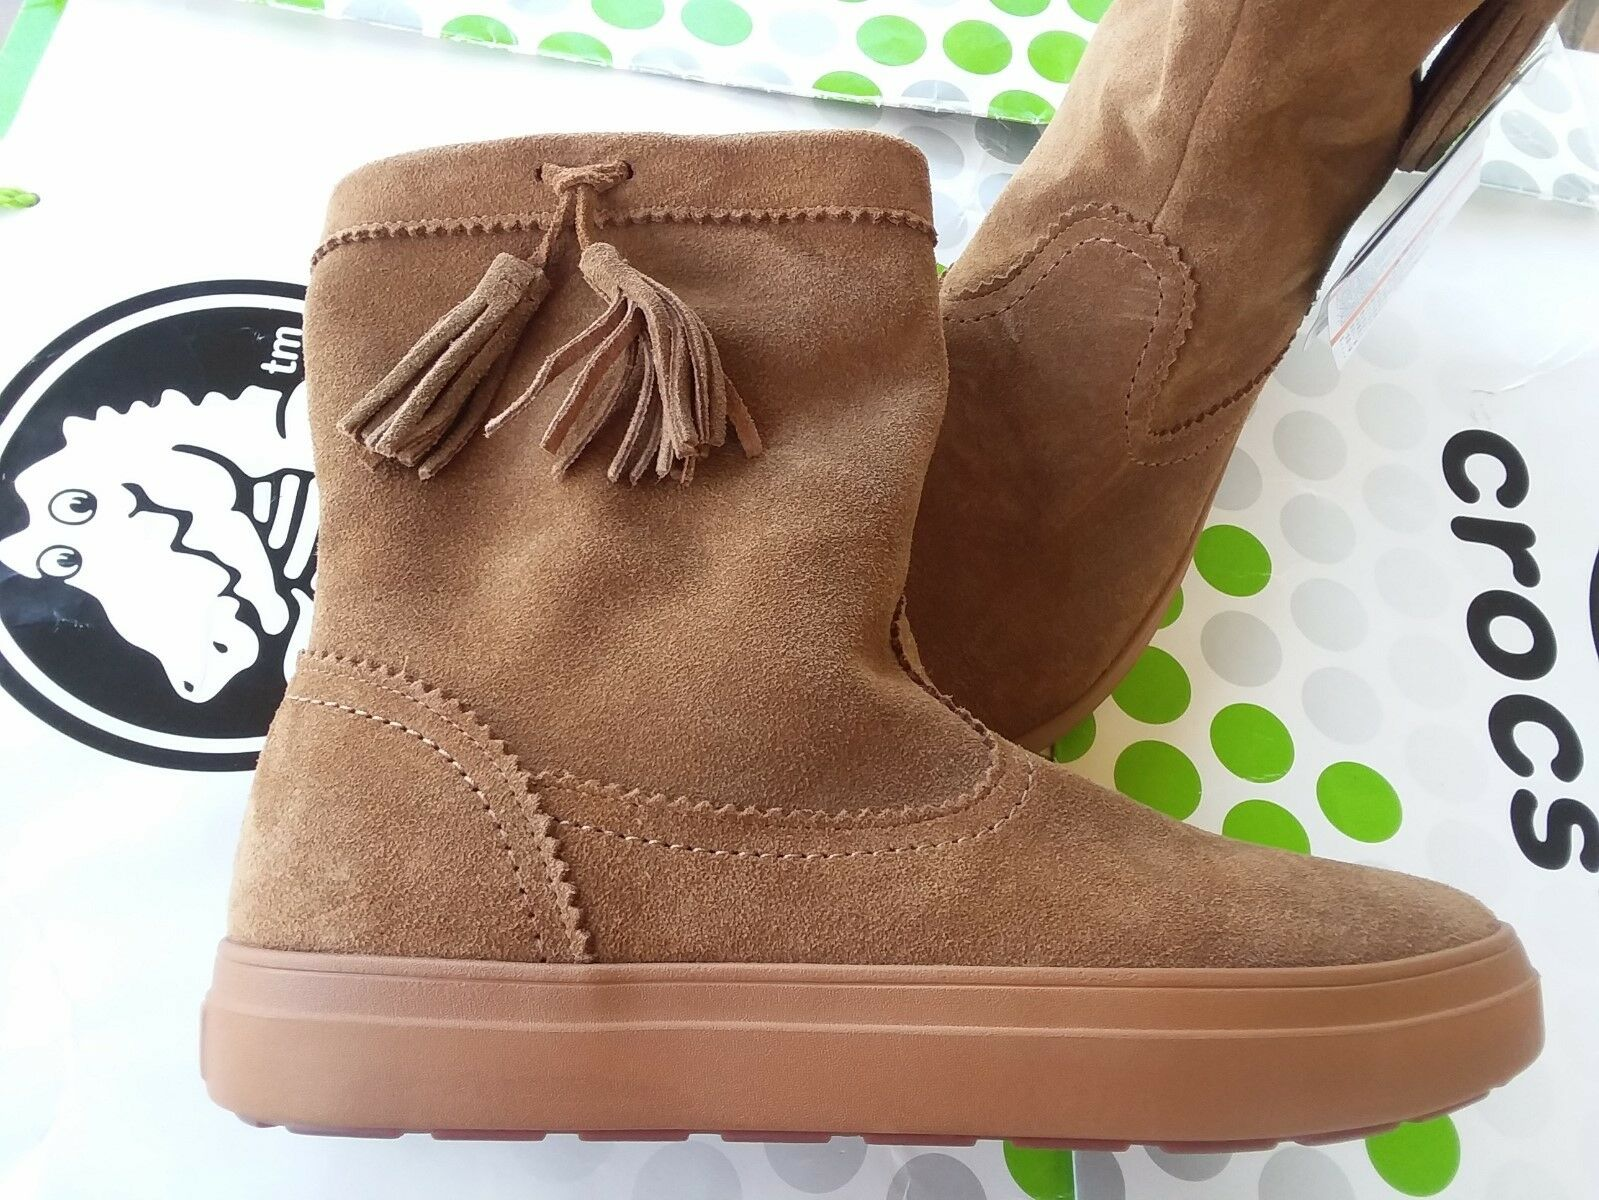 CROCS LODGEPOINT SUEDE PULL ON CROCBAND WINTER HIGH SNOW BOOT~Brown Tan~W 8~NWT